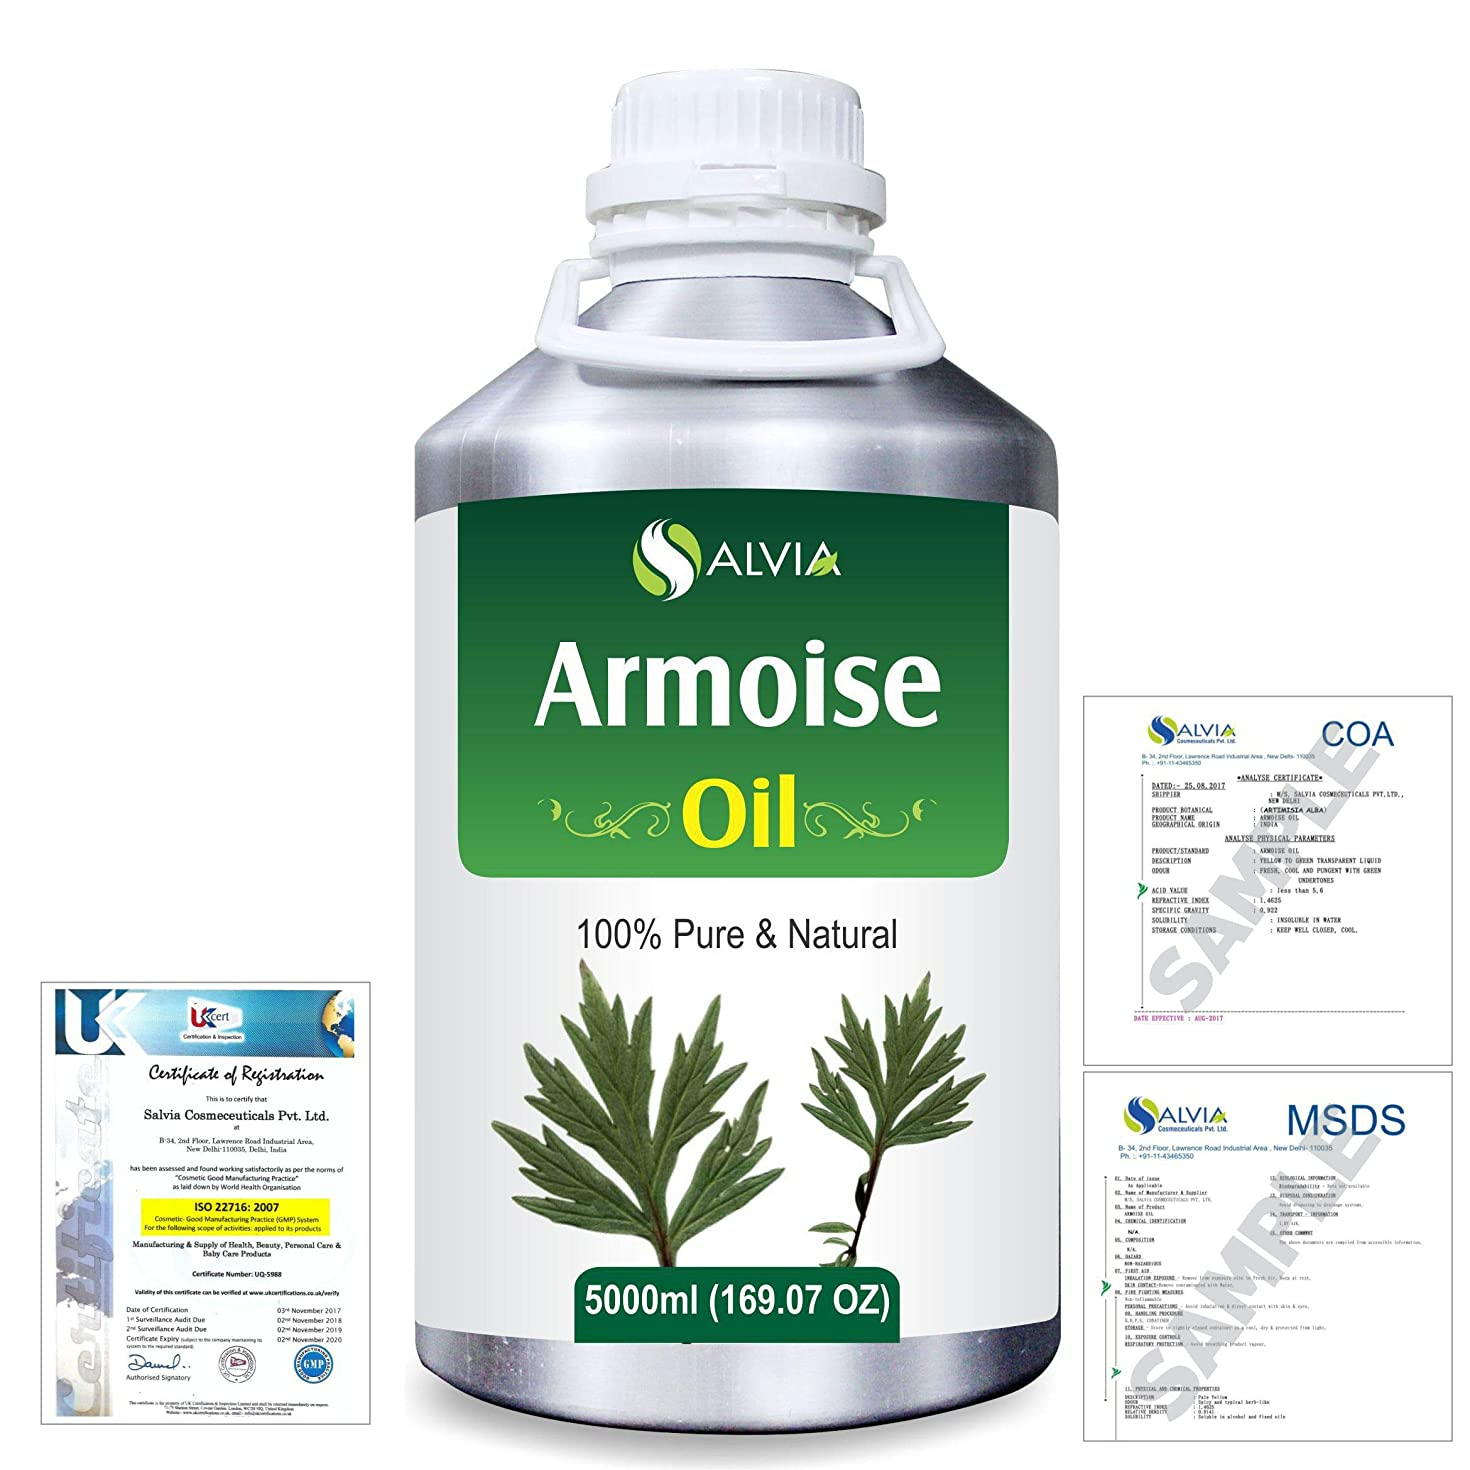 気配りのある速報ラメArmoise (Artimisia alba) 100% Natural Pure Essential Oil 5000ml/169fl.oz.